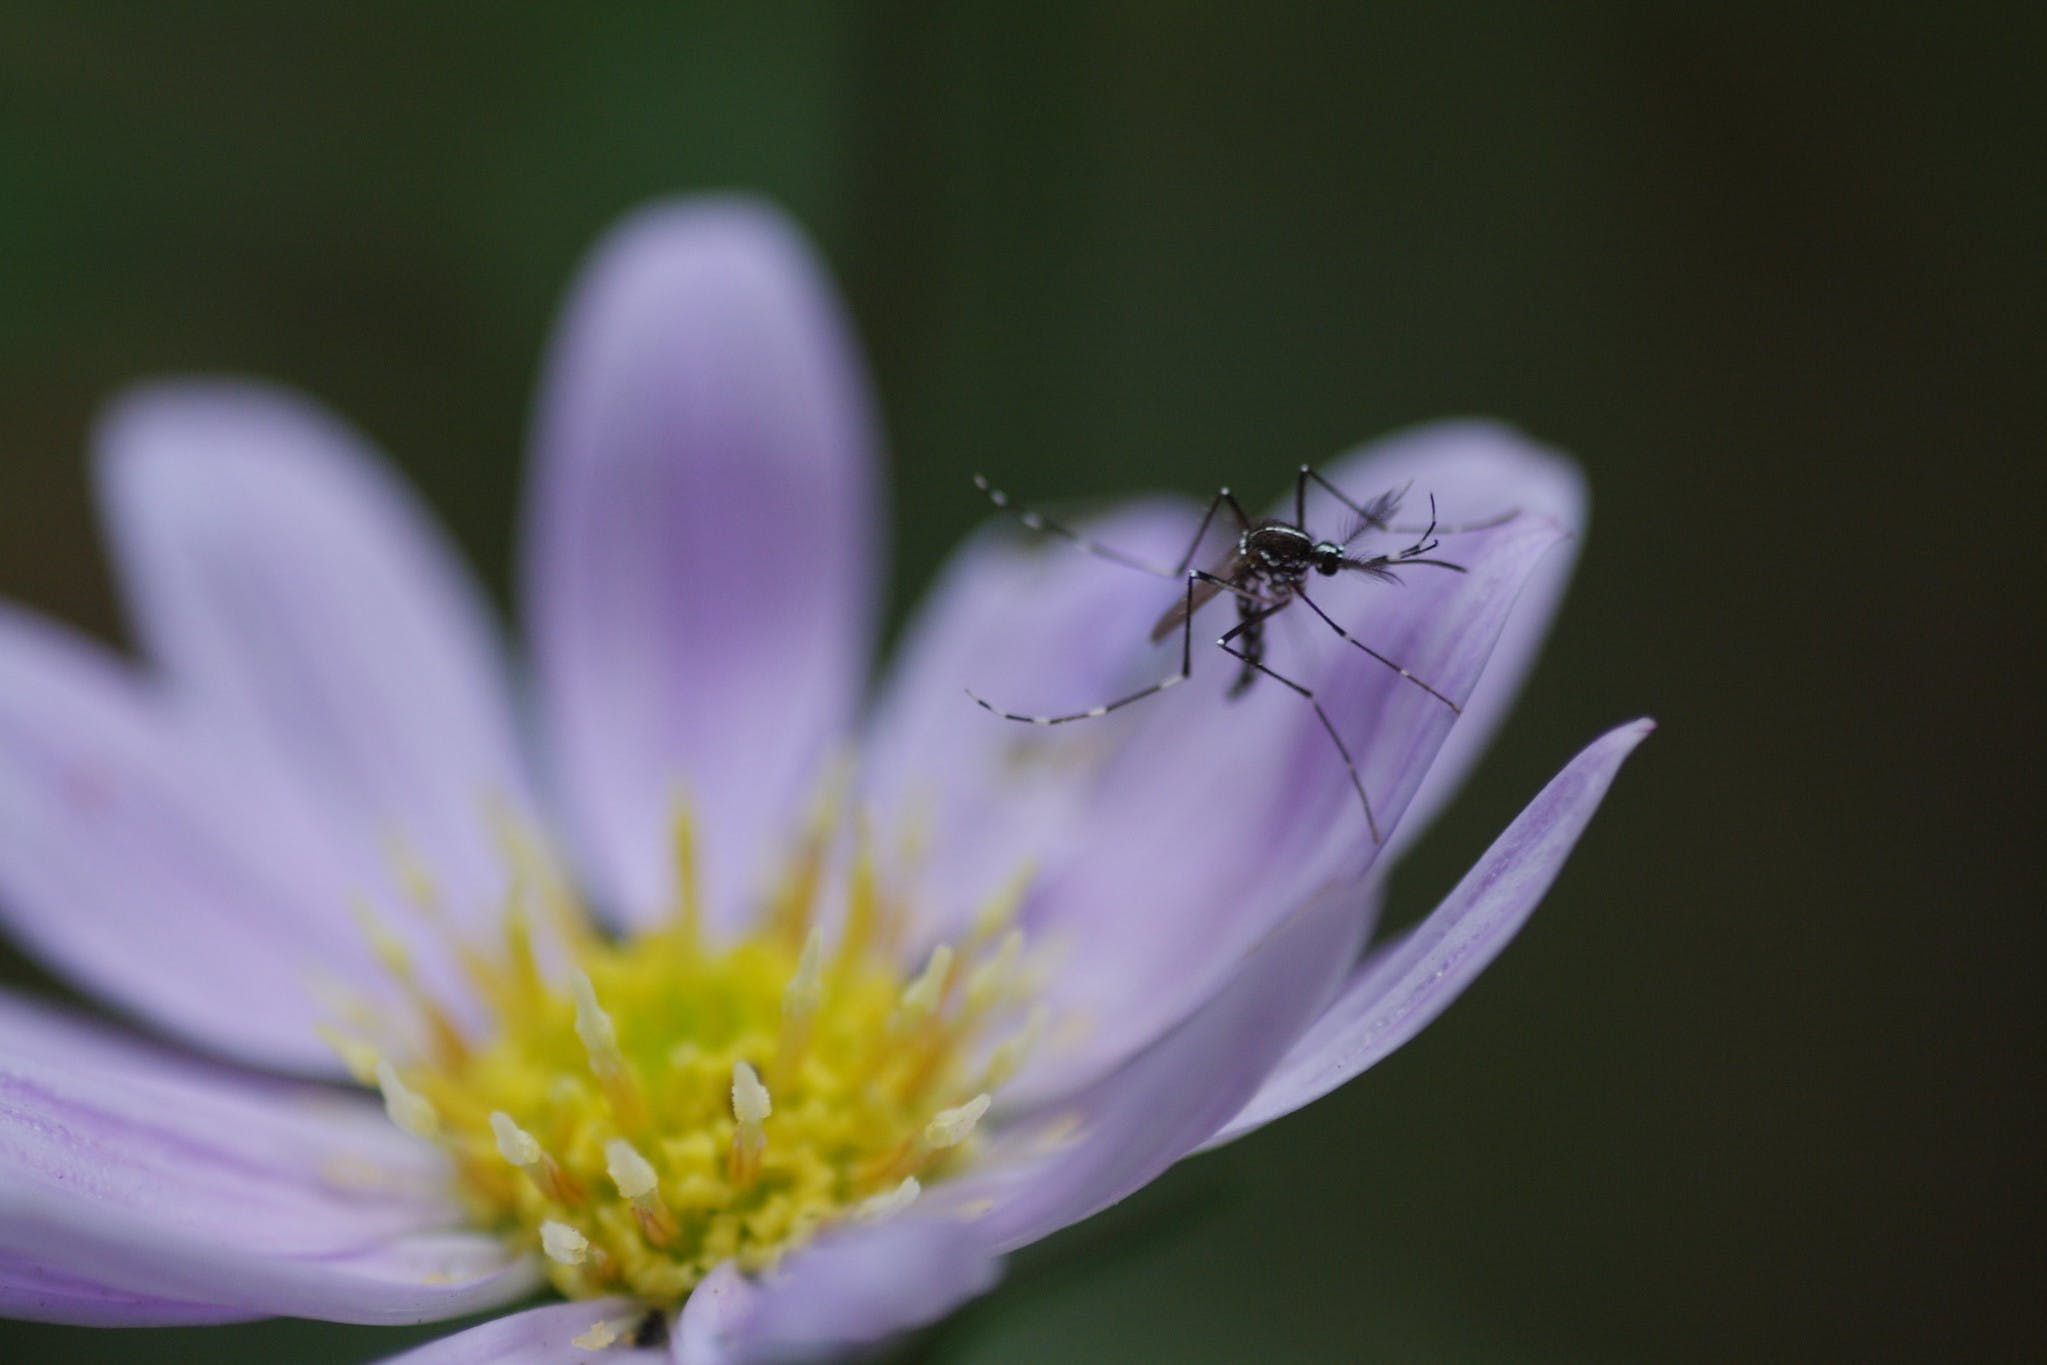 Mosquito on purple flower